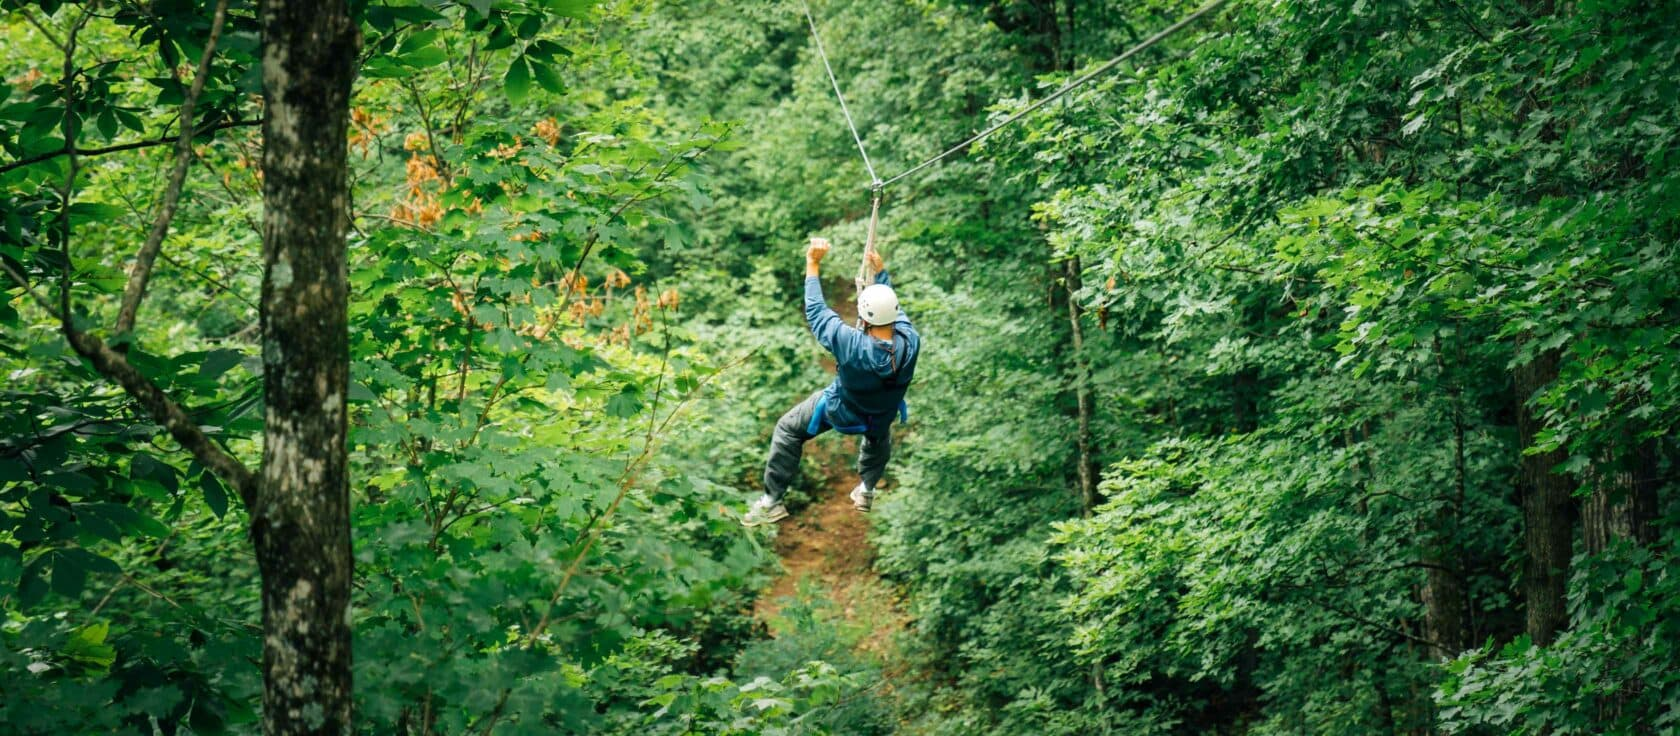 A man zipping the the tree canopy on The Buffalo River Canopy Tour.